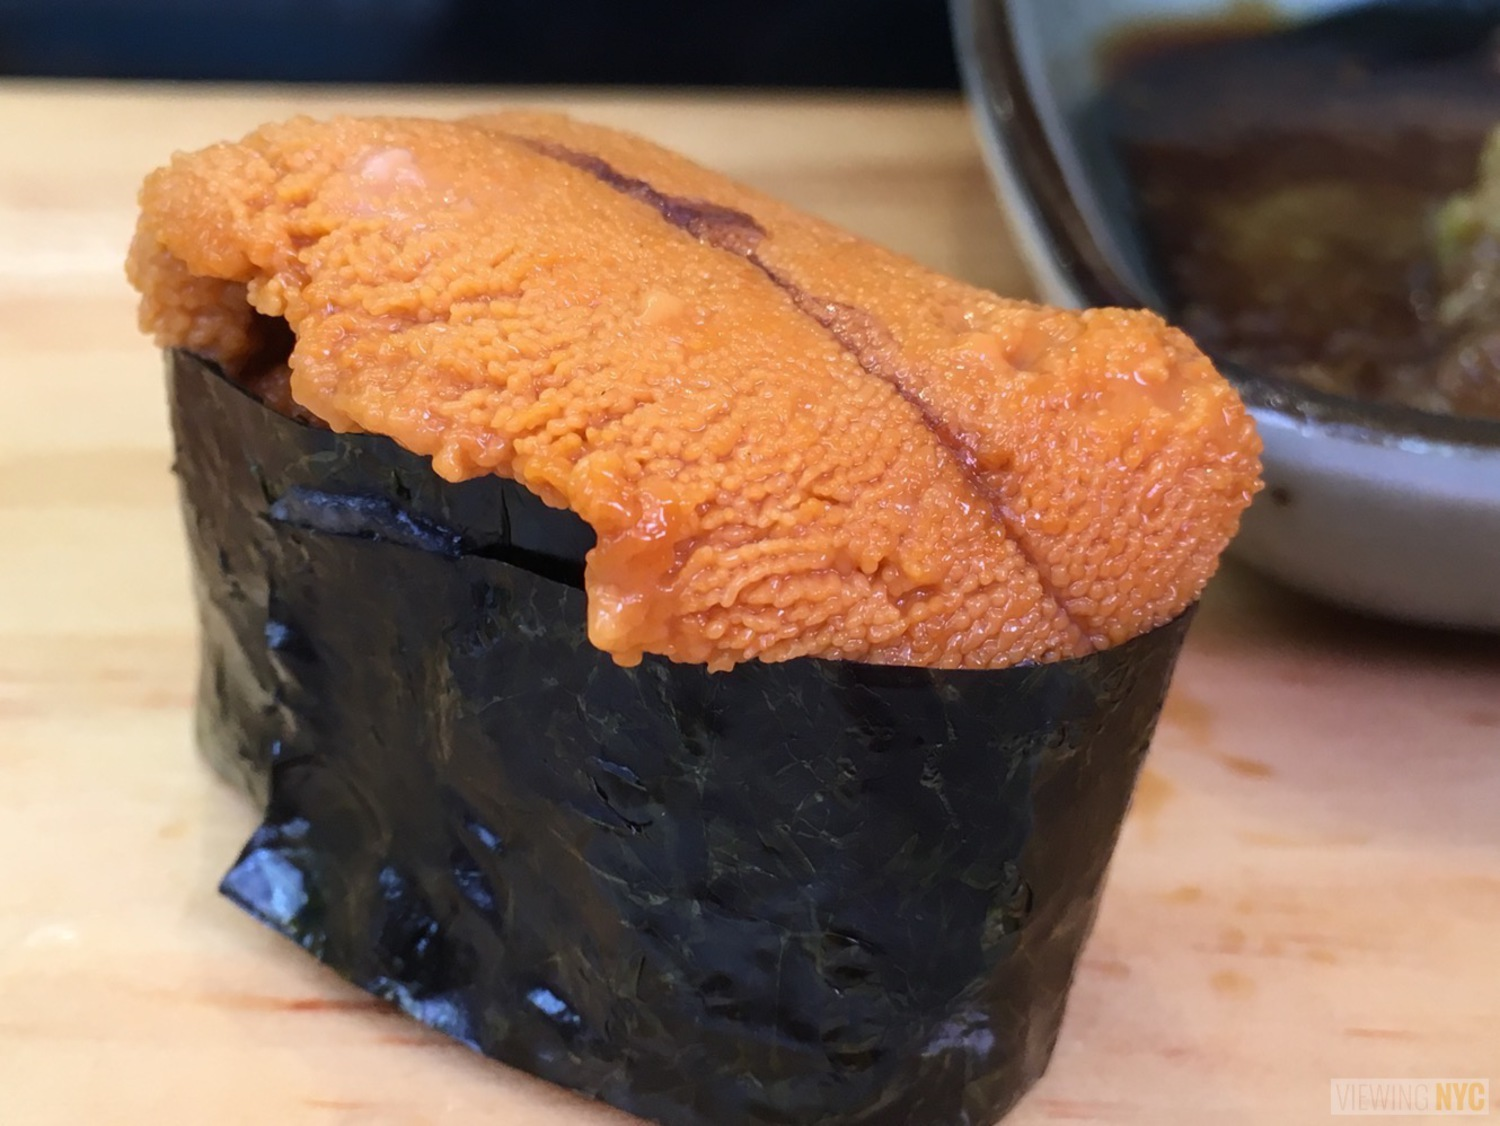 Sushi on Jones - Uni